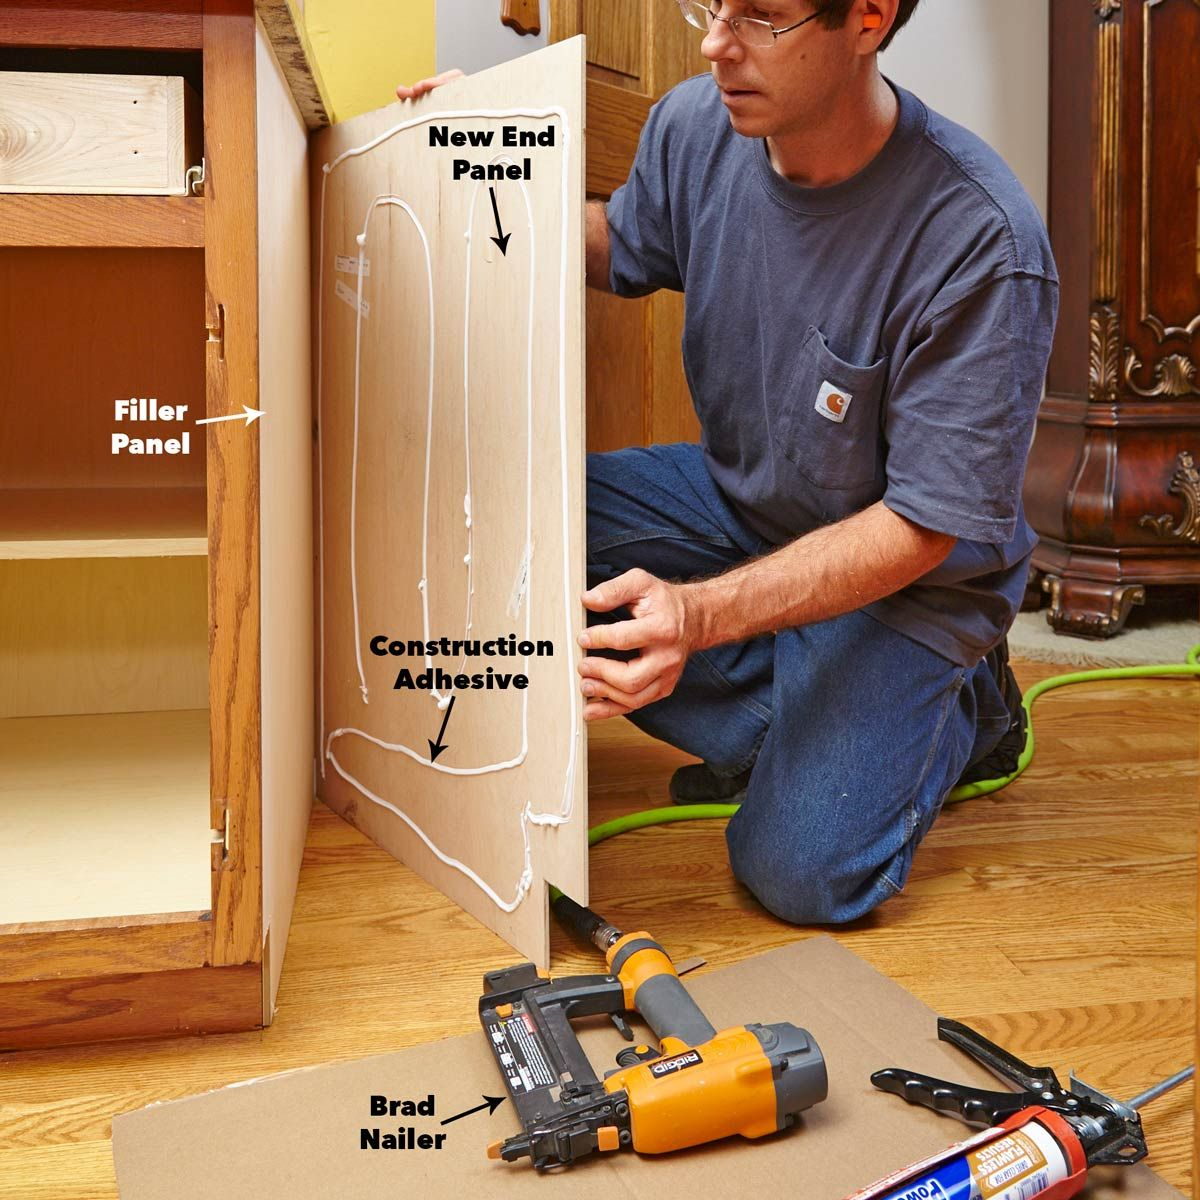 Install Cabinet Refacing End Panels Cabinet Door Refacing Refacing Kitchen Cabinets Cabinet Refacing Diy Cabinet Refacing